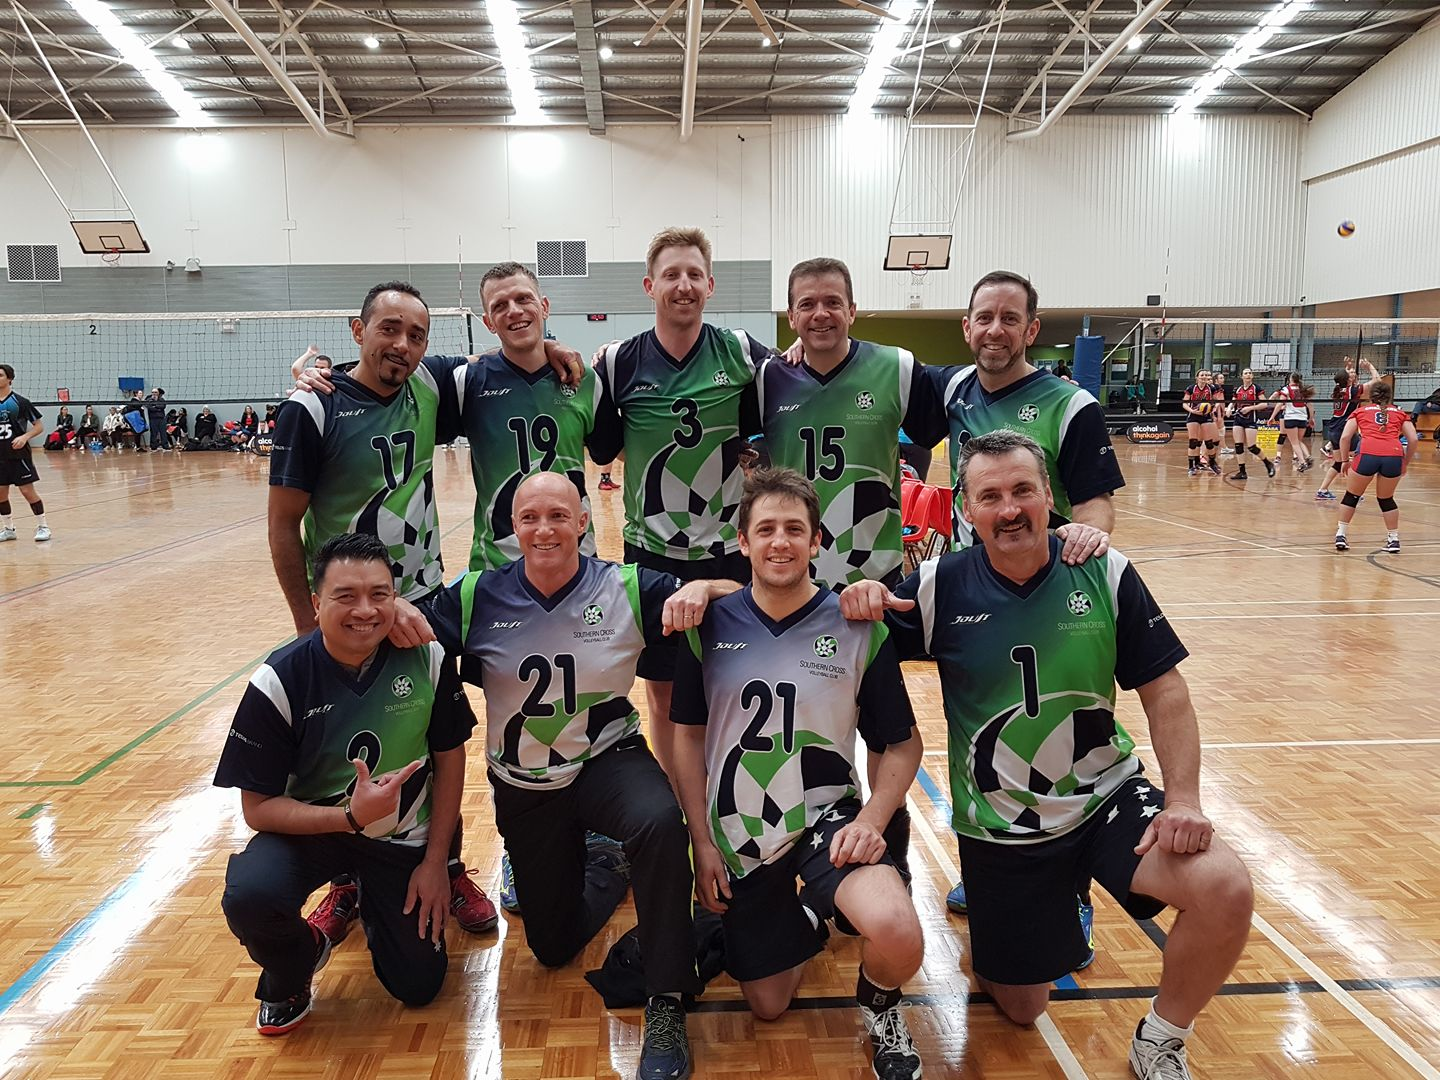 Southern Cross Volleyball Club